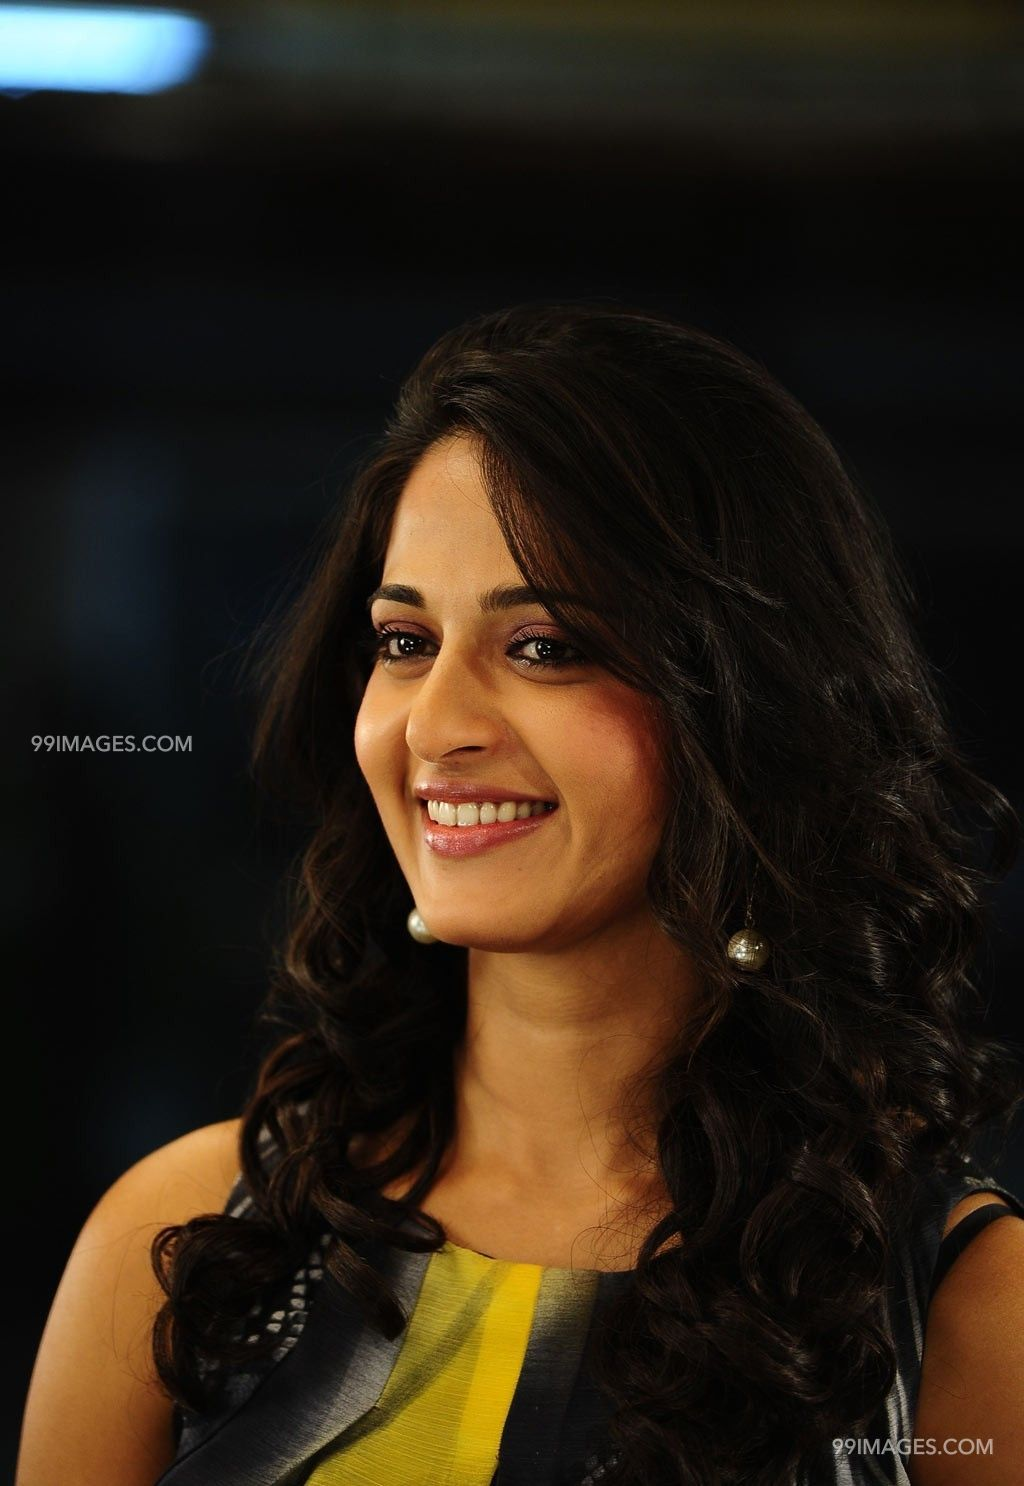 Anushka Shetty Beautiful HD Photoshoot Stills (1080p) (3681) - Anushka Shetty